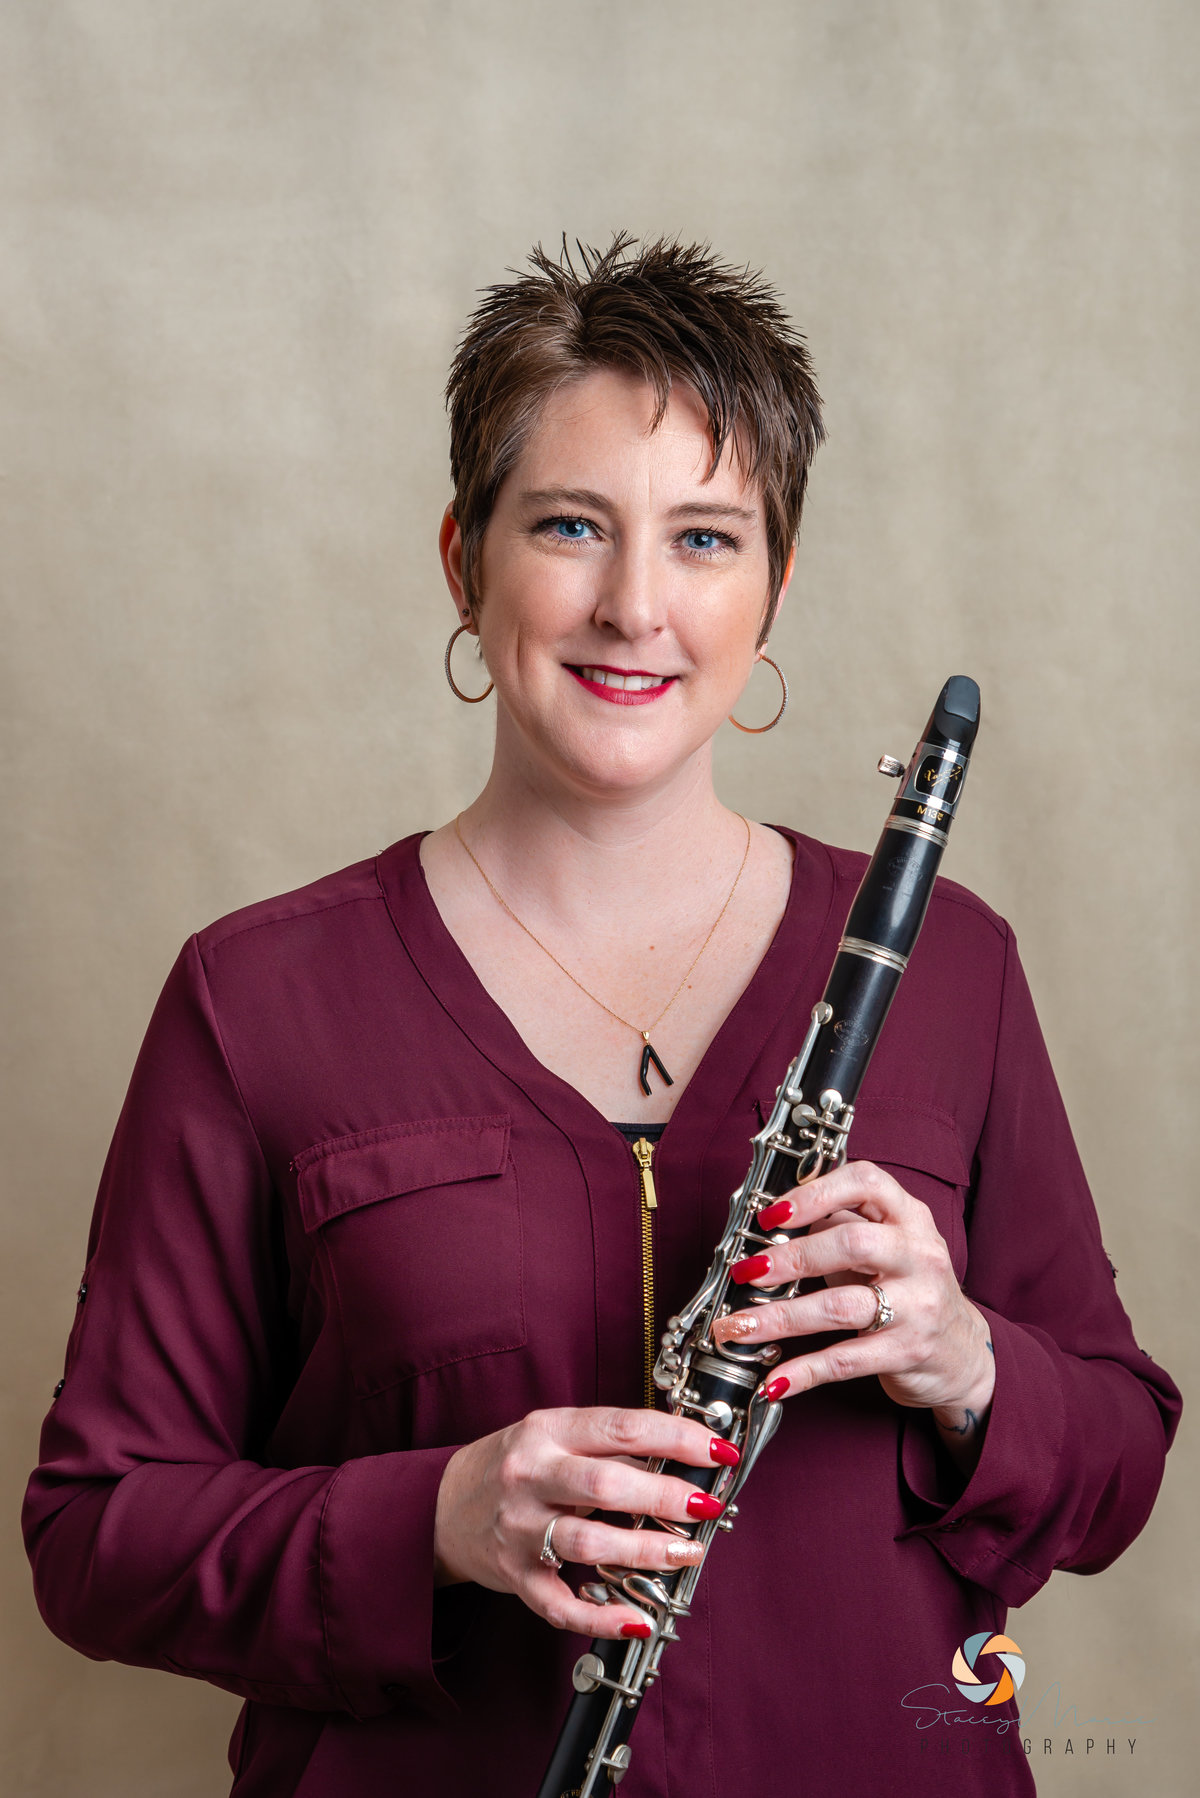 Headshot of a musician with a clarinet